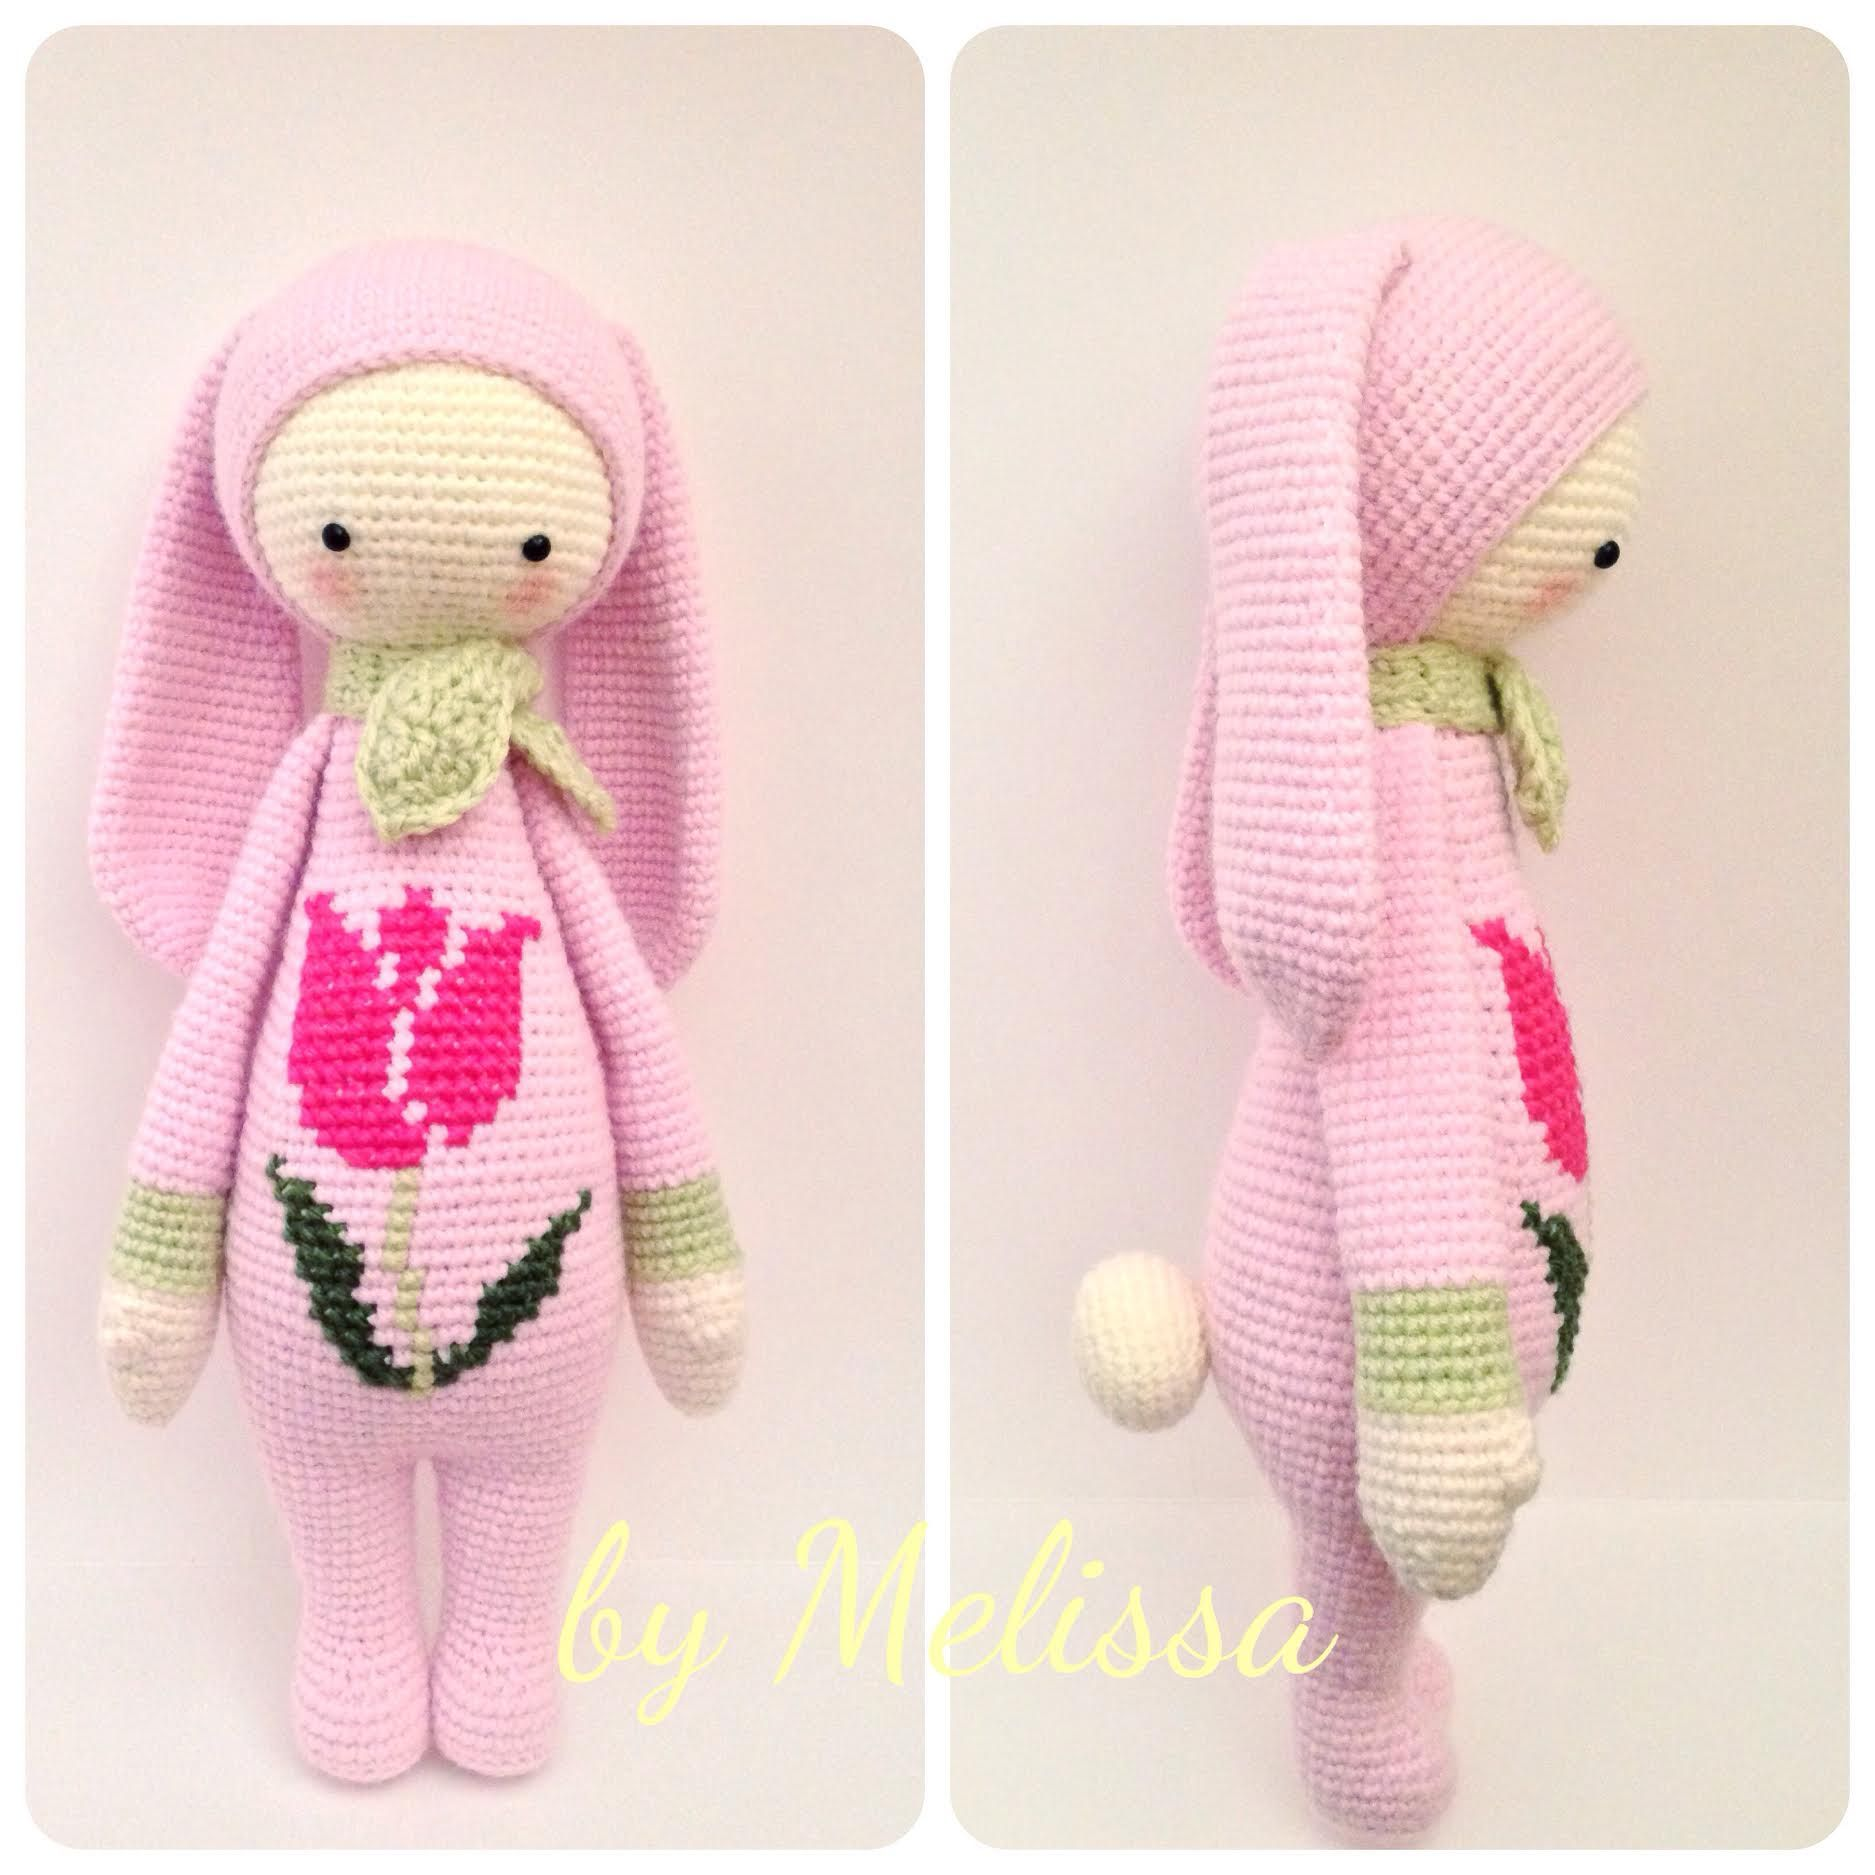 RITA the rabbit made by Melissa G. / crochet pattern by lalylala ...